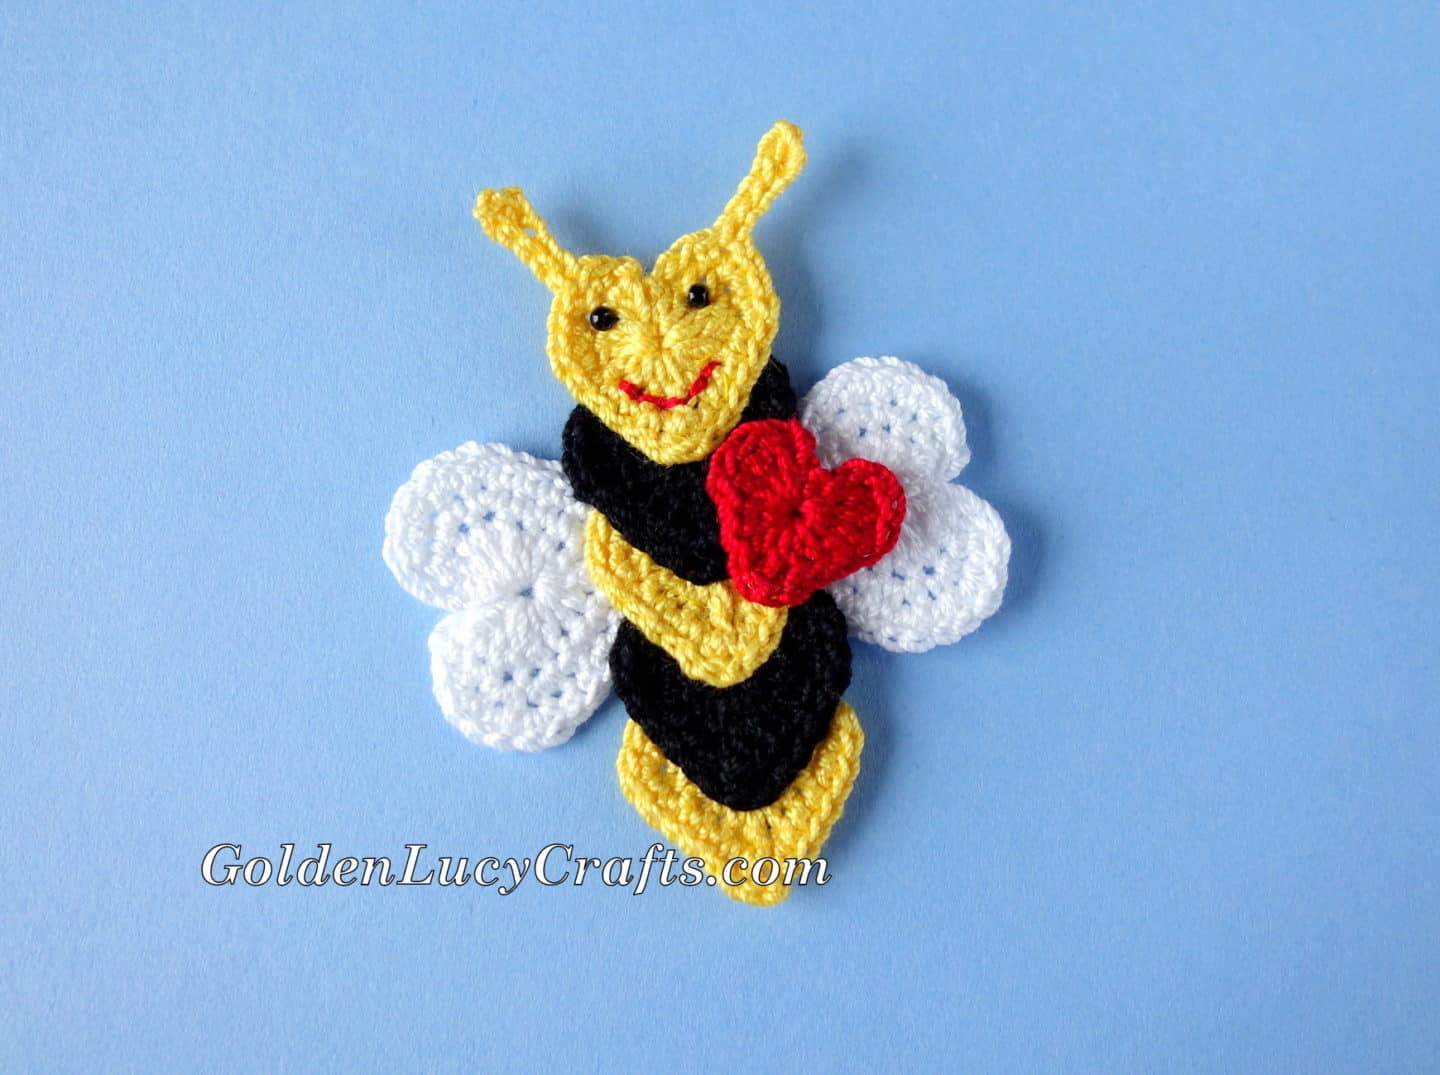 Crochet Bee Applique Valentine's Day Free Pattern